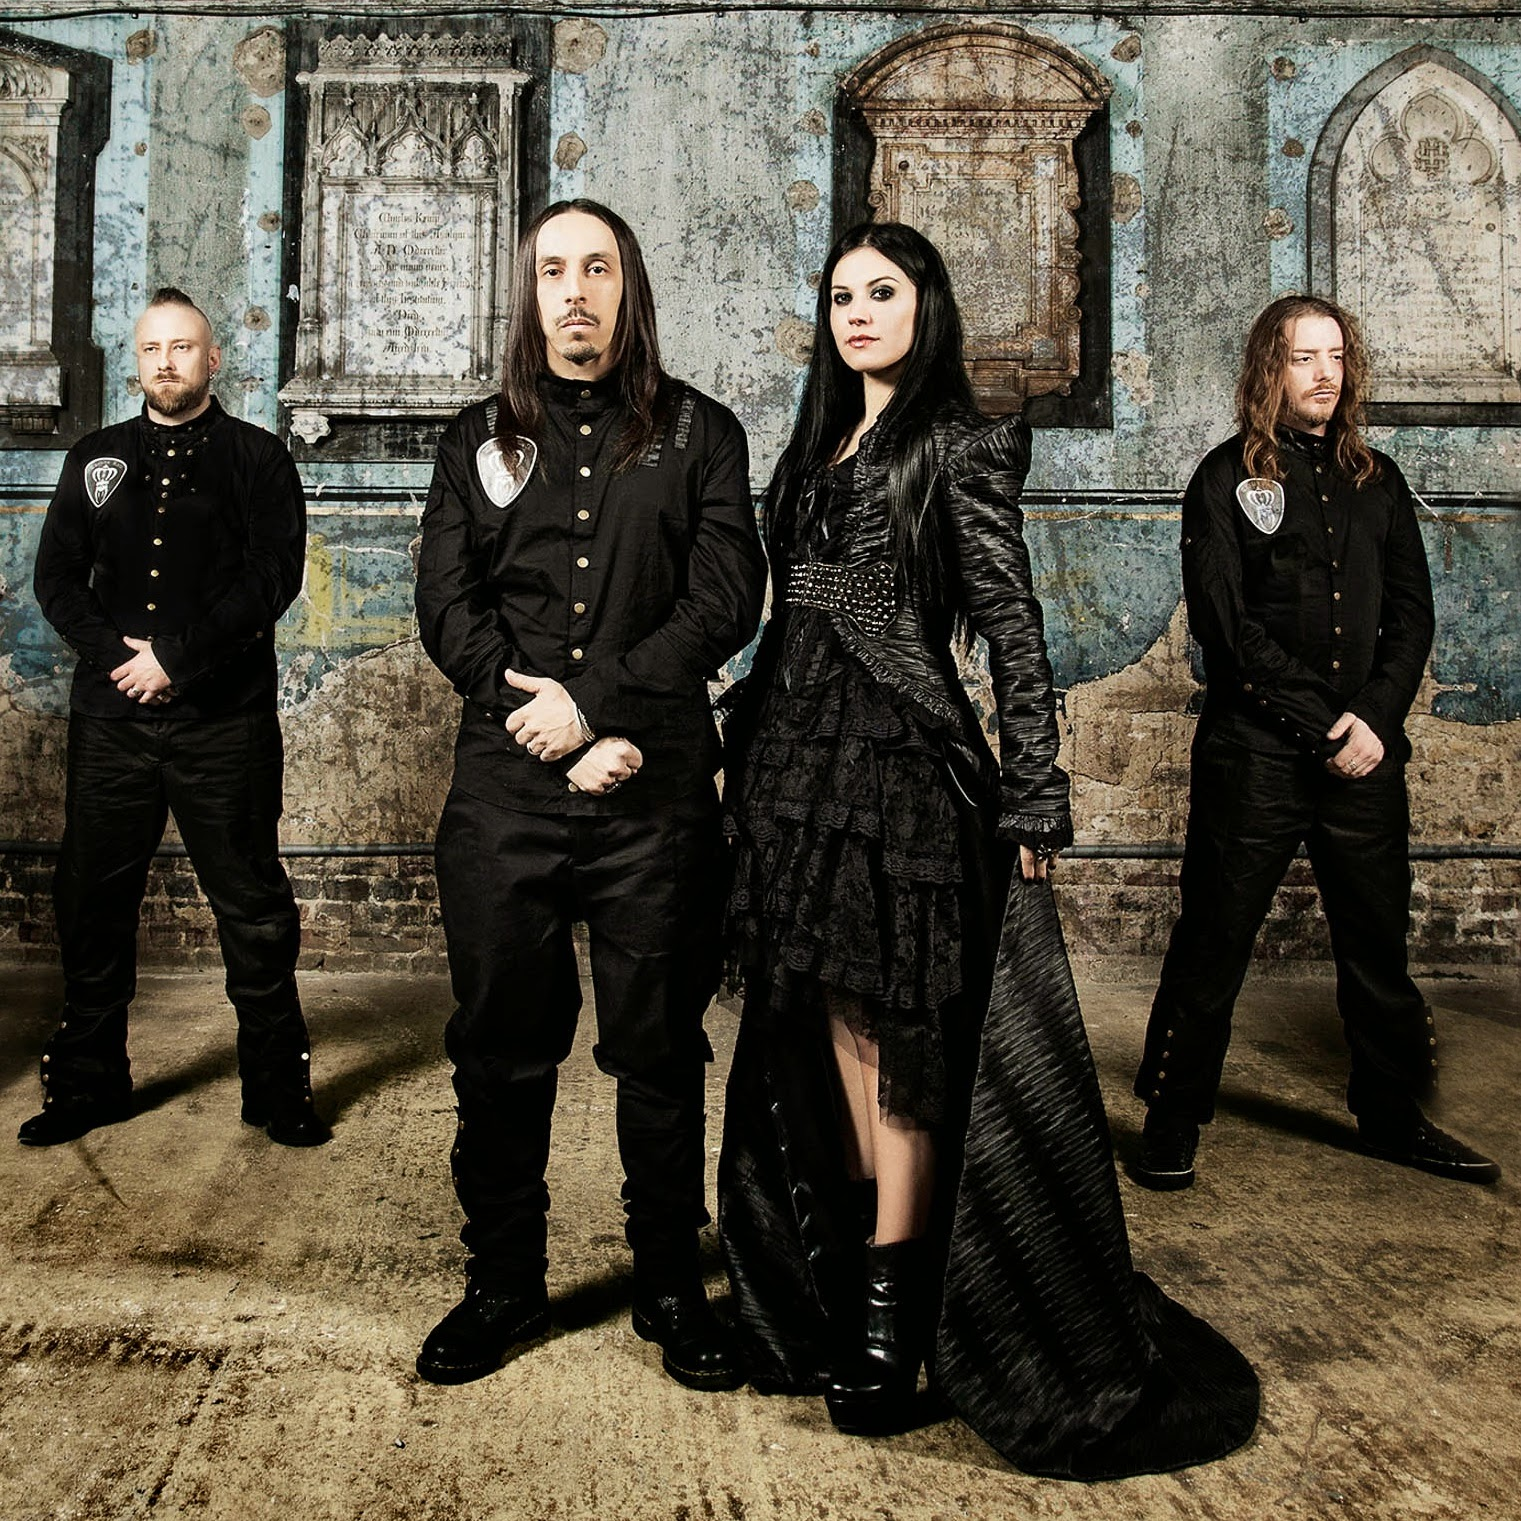 Lacuna Coil is an Italian metal band from Milan. Since their formation in 1994, the group has had two name changes, being previously known as Sleep of Right and Ethereal. http://www.jinglejanglejungle.net/2015/02/eu4.html #LacunaCoil